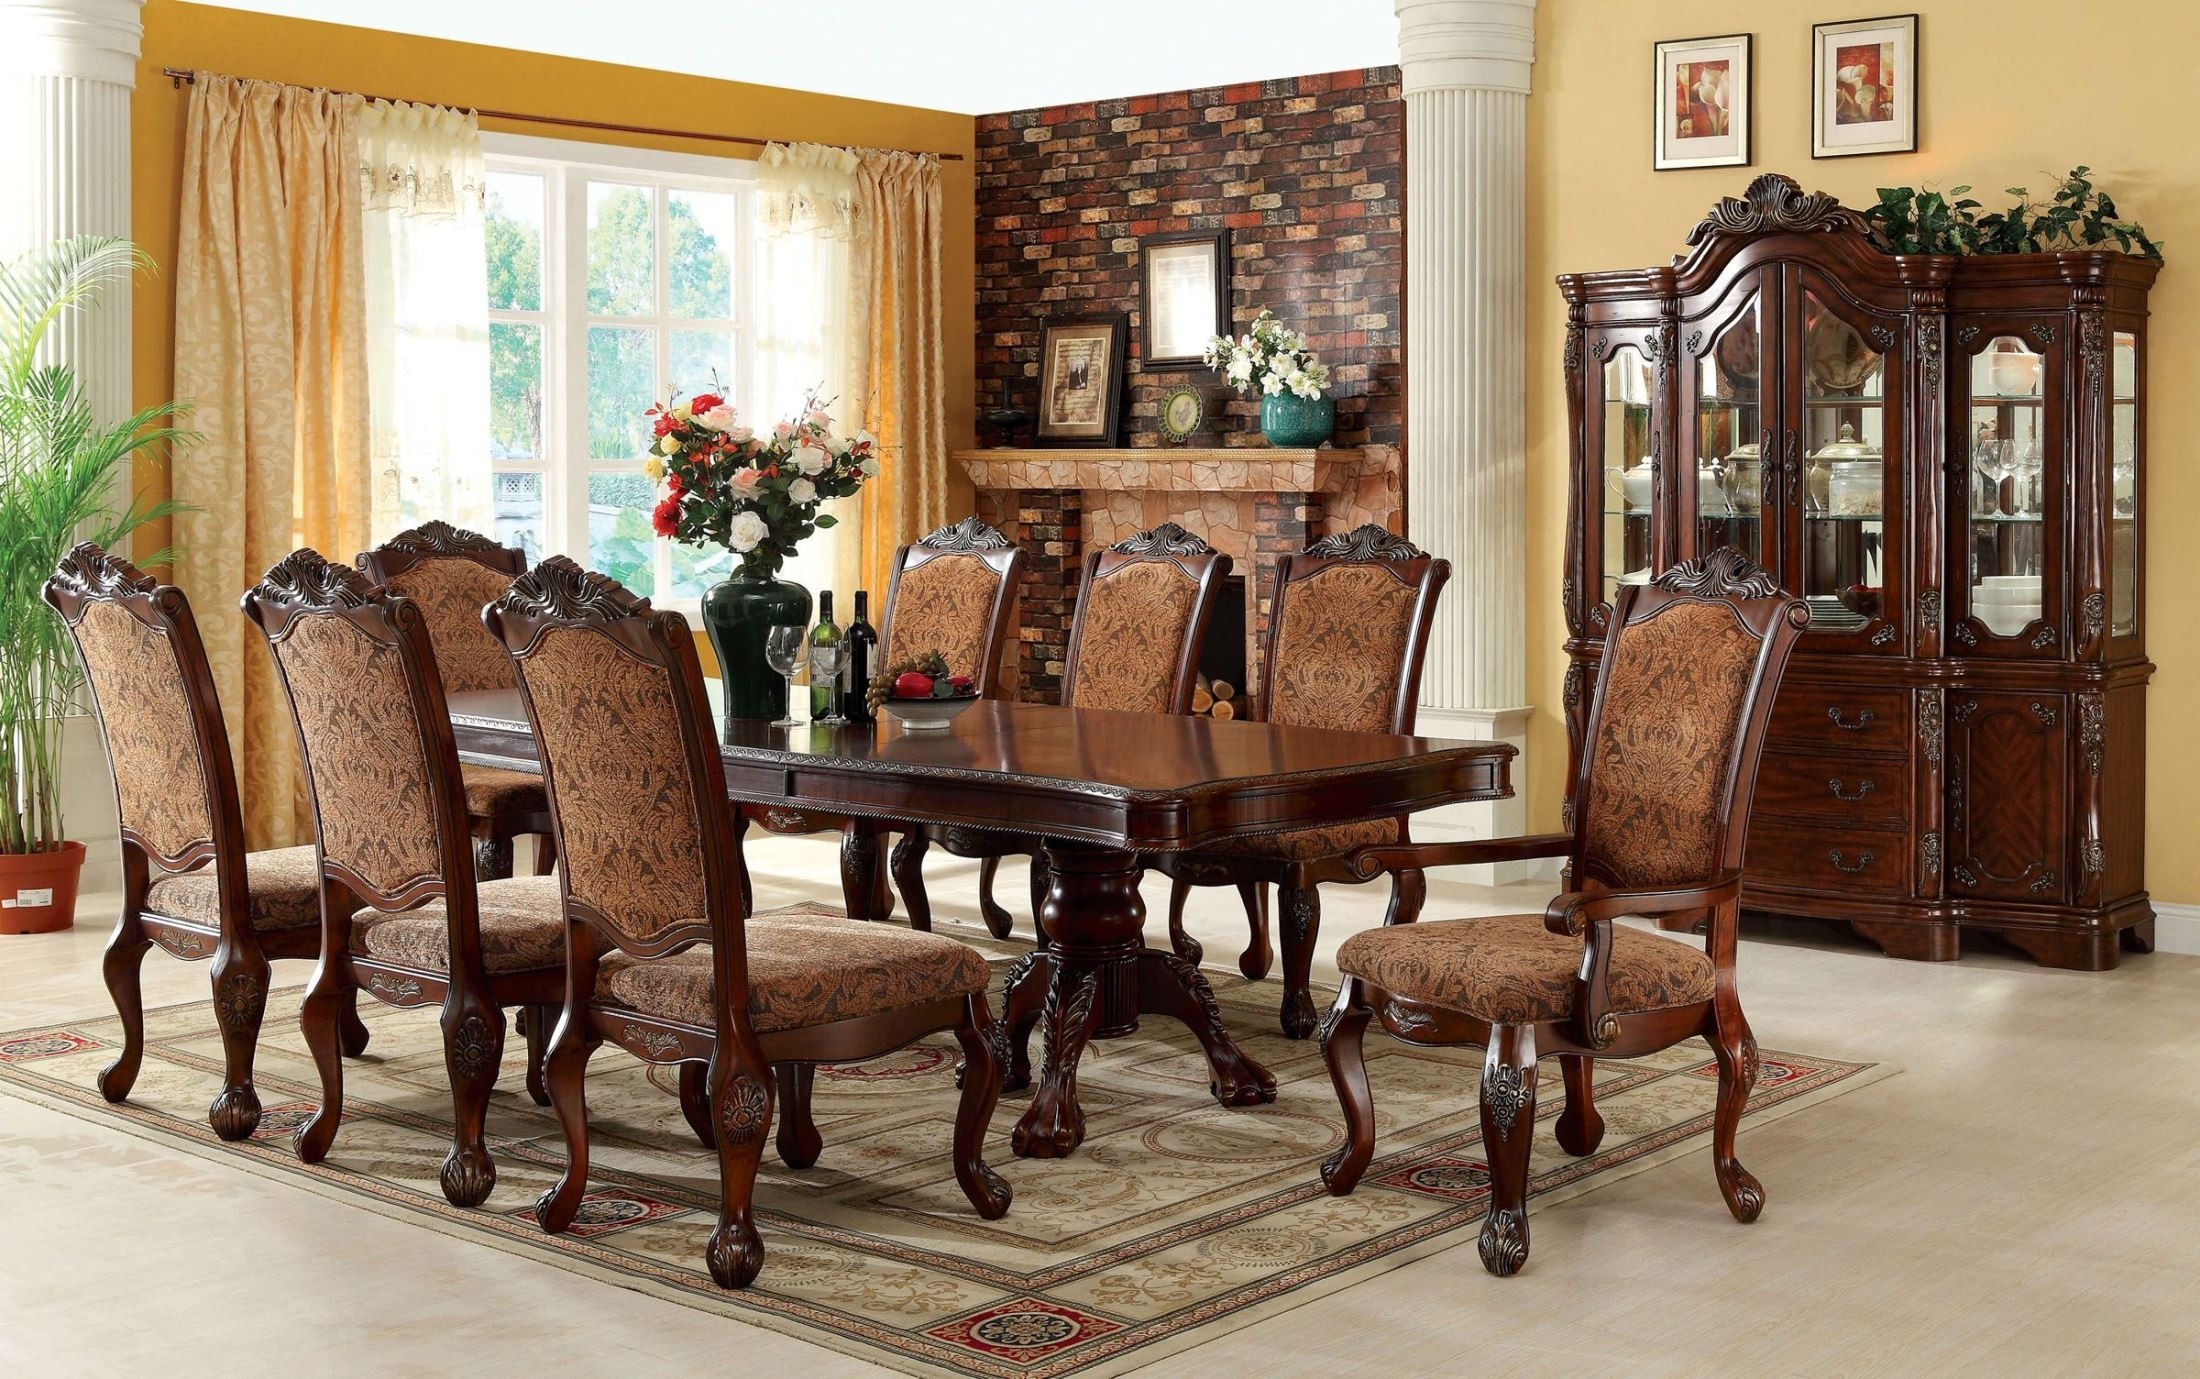 Cromwell antique cherry formal dining room set cm3103t for Antique dining room furniture